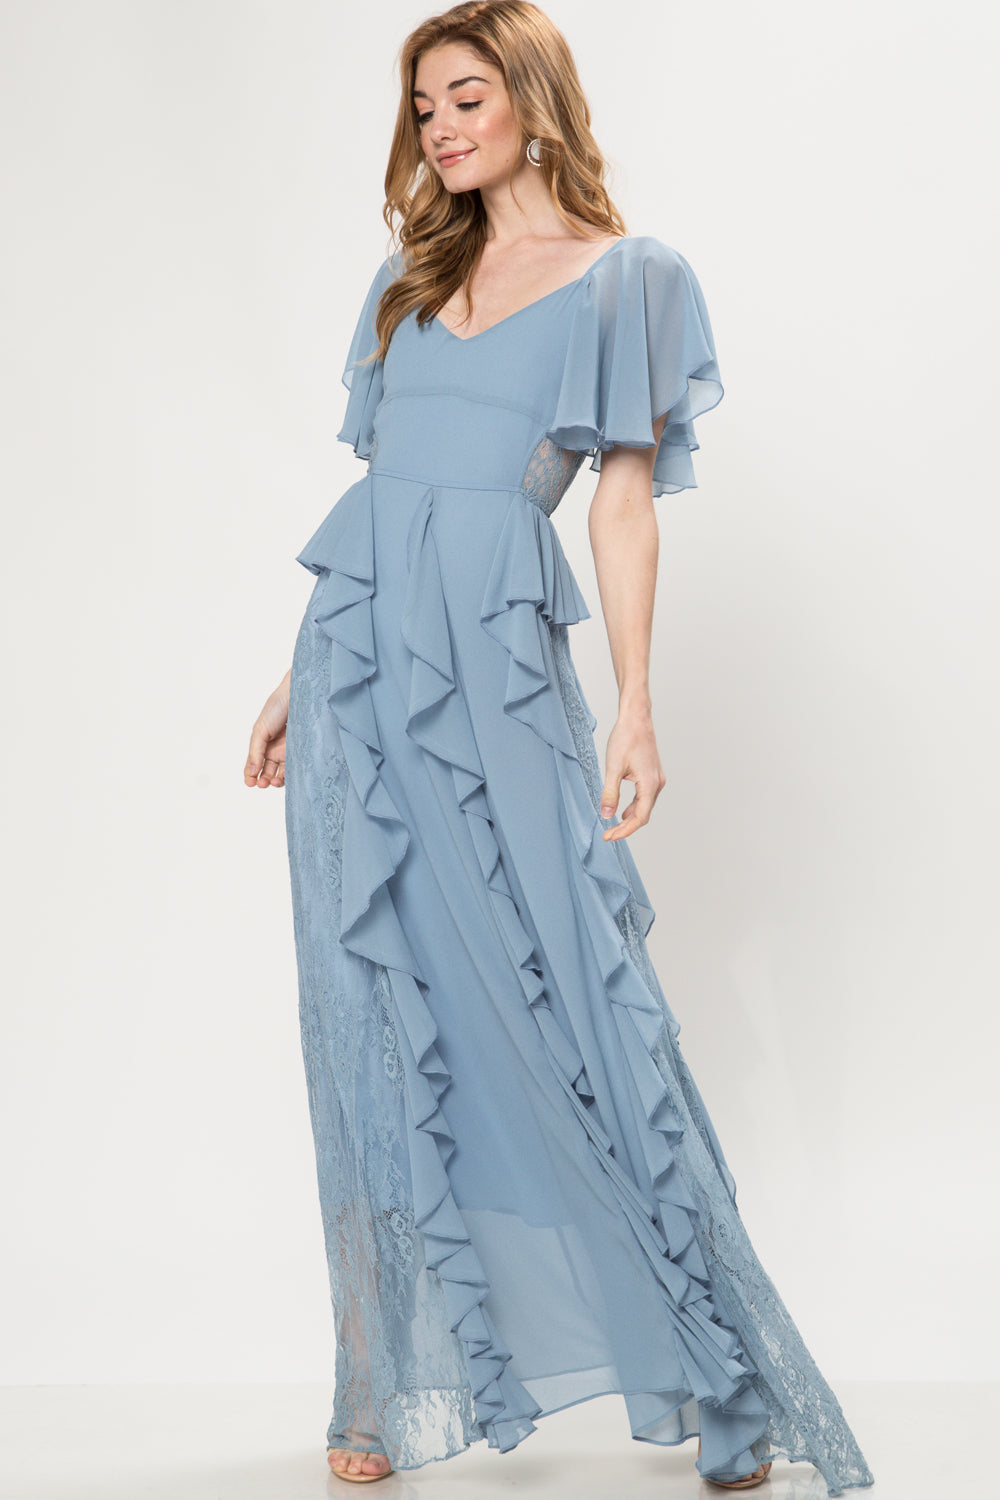 Claudia Short Sleeve Ruffle Maxi Dress - Geegeebae